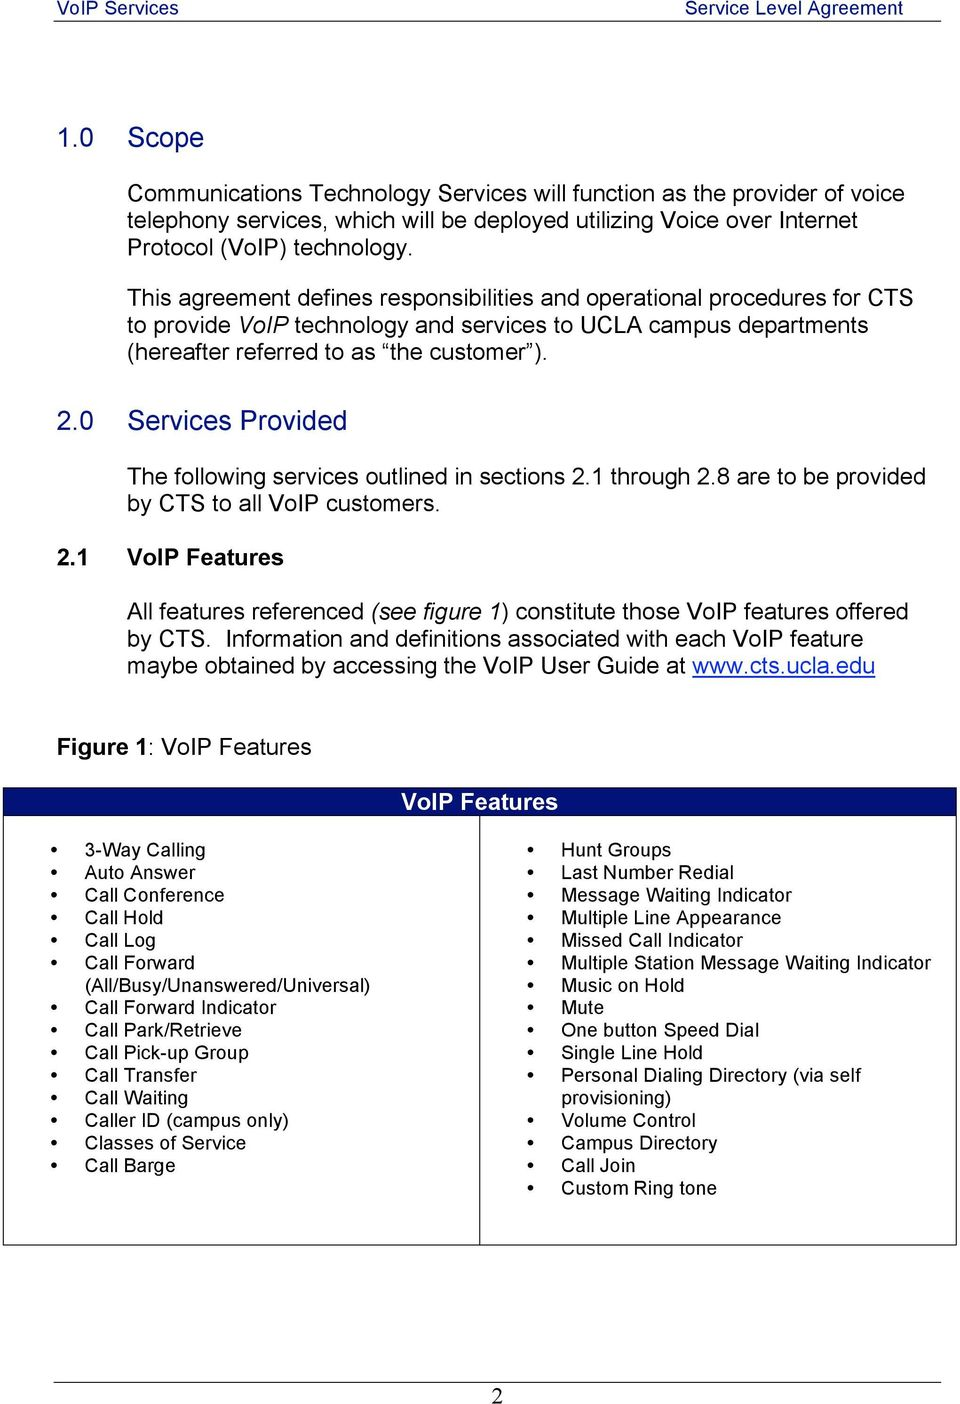 0 Services Provided The following services outlined in sections 2.1 through 2.8 are to be provided by CTS to all VoIP customers. 2.1 VoIP Features All features referenced (see figure 1) constitute those VoIP features offered by CTS.